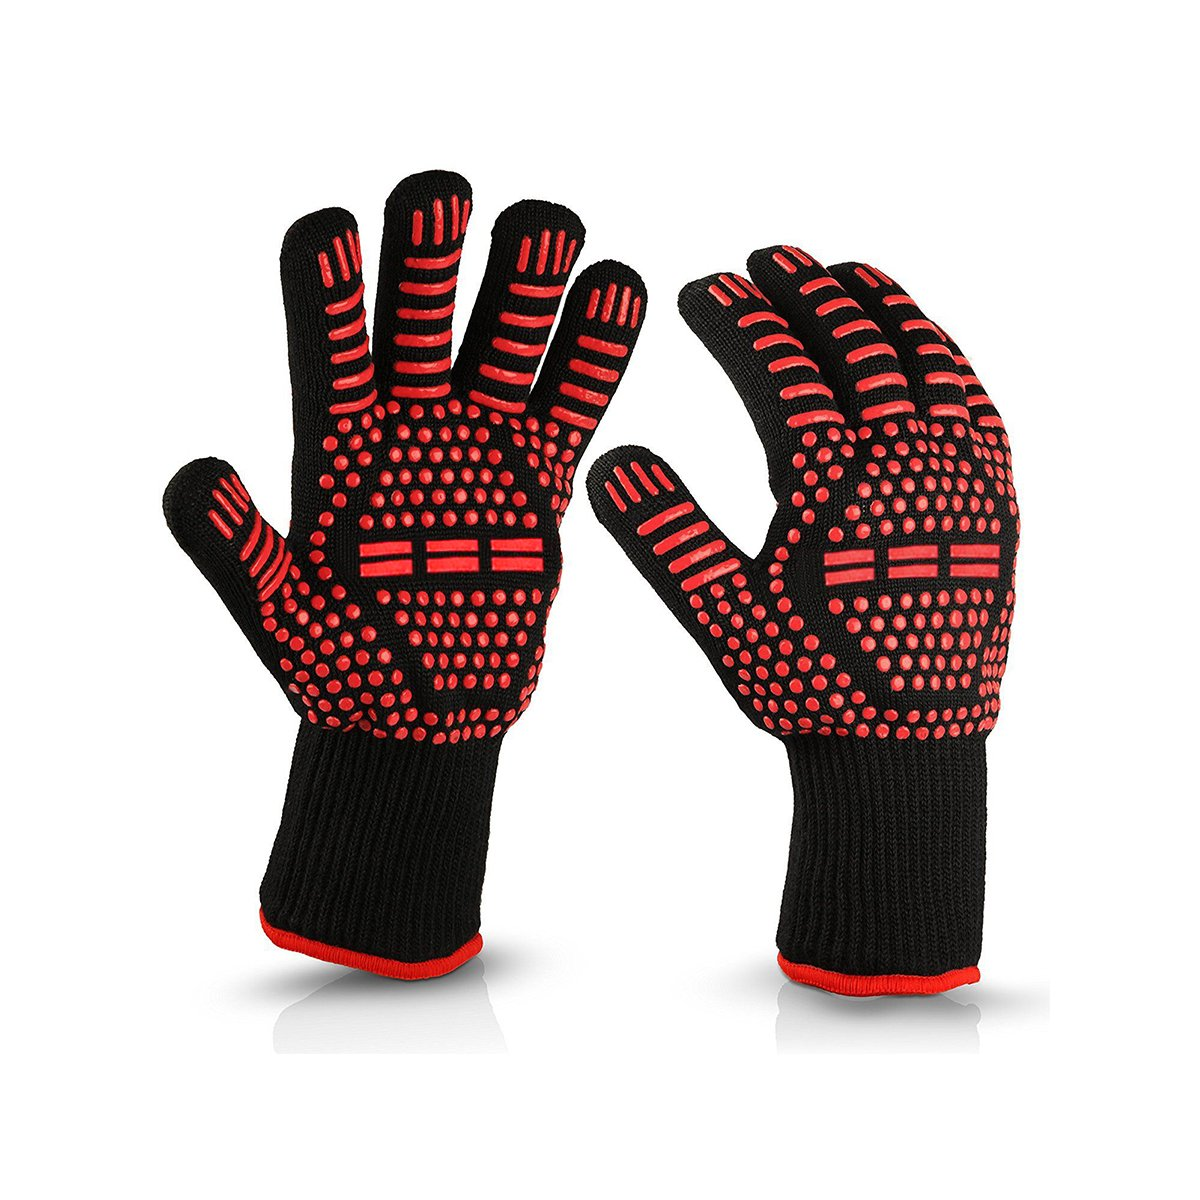 Yummy&Yummy Oven Gloves Heat Resistant Cooking Mitts-BBQ Grilling - Fireplace Accessories and Welding,Cut Resistant and Forearm Protection with 500°C High Performance Heat Resistance 1 pair